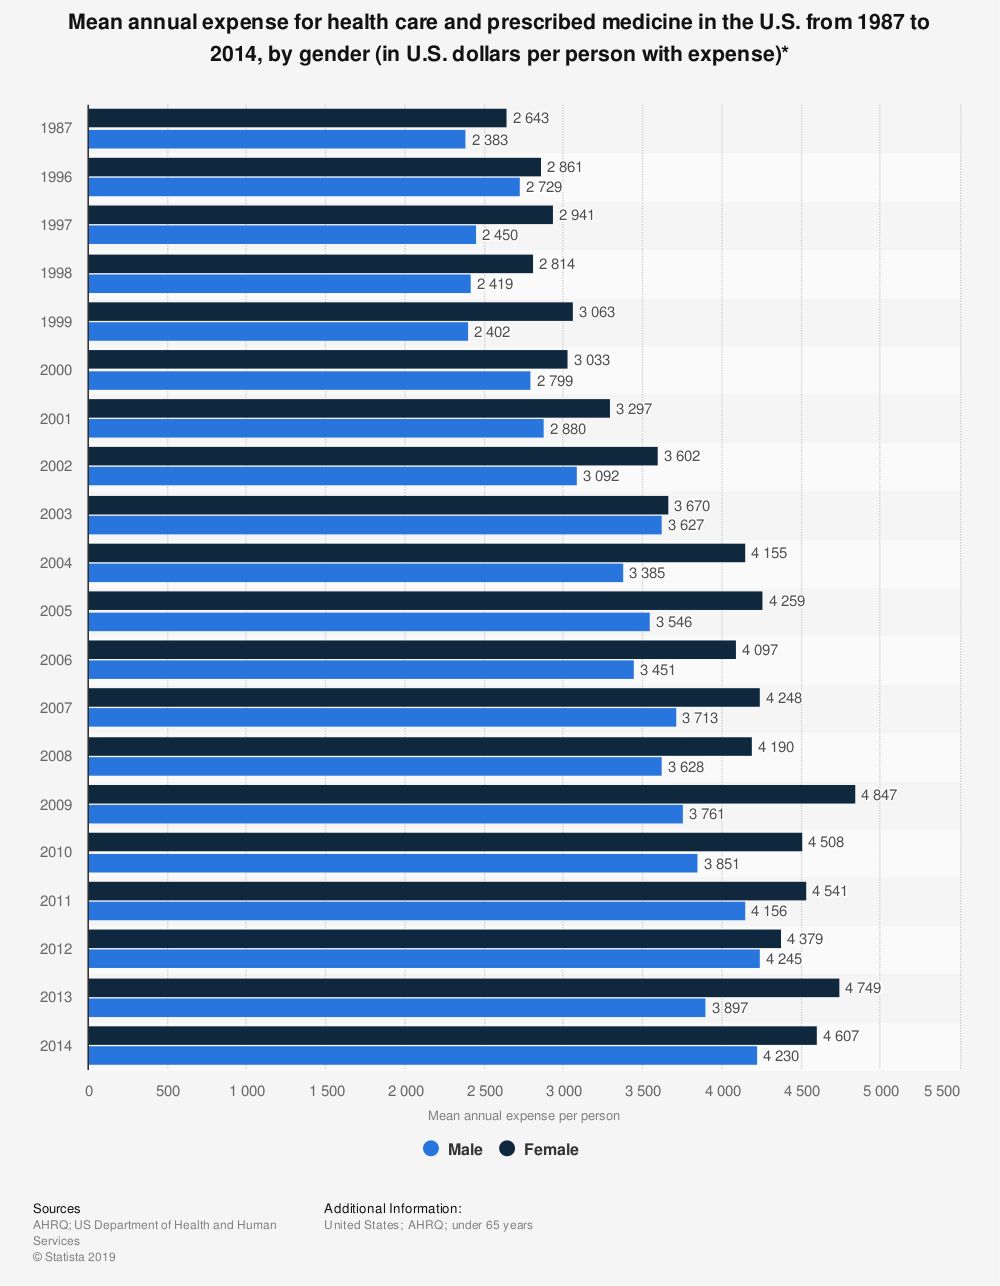 Statistic: Mean annual expense for health care and prescribed medicine in the U.S. from 1987 to 2014, by gender (in U.S. dollars per person with expense)* | Statista